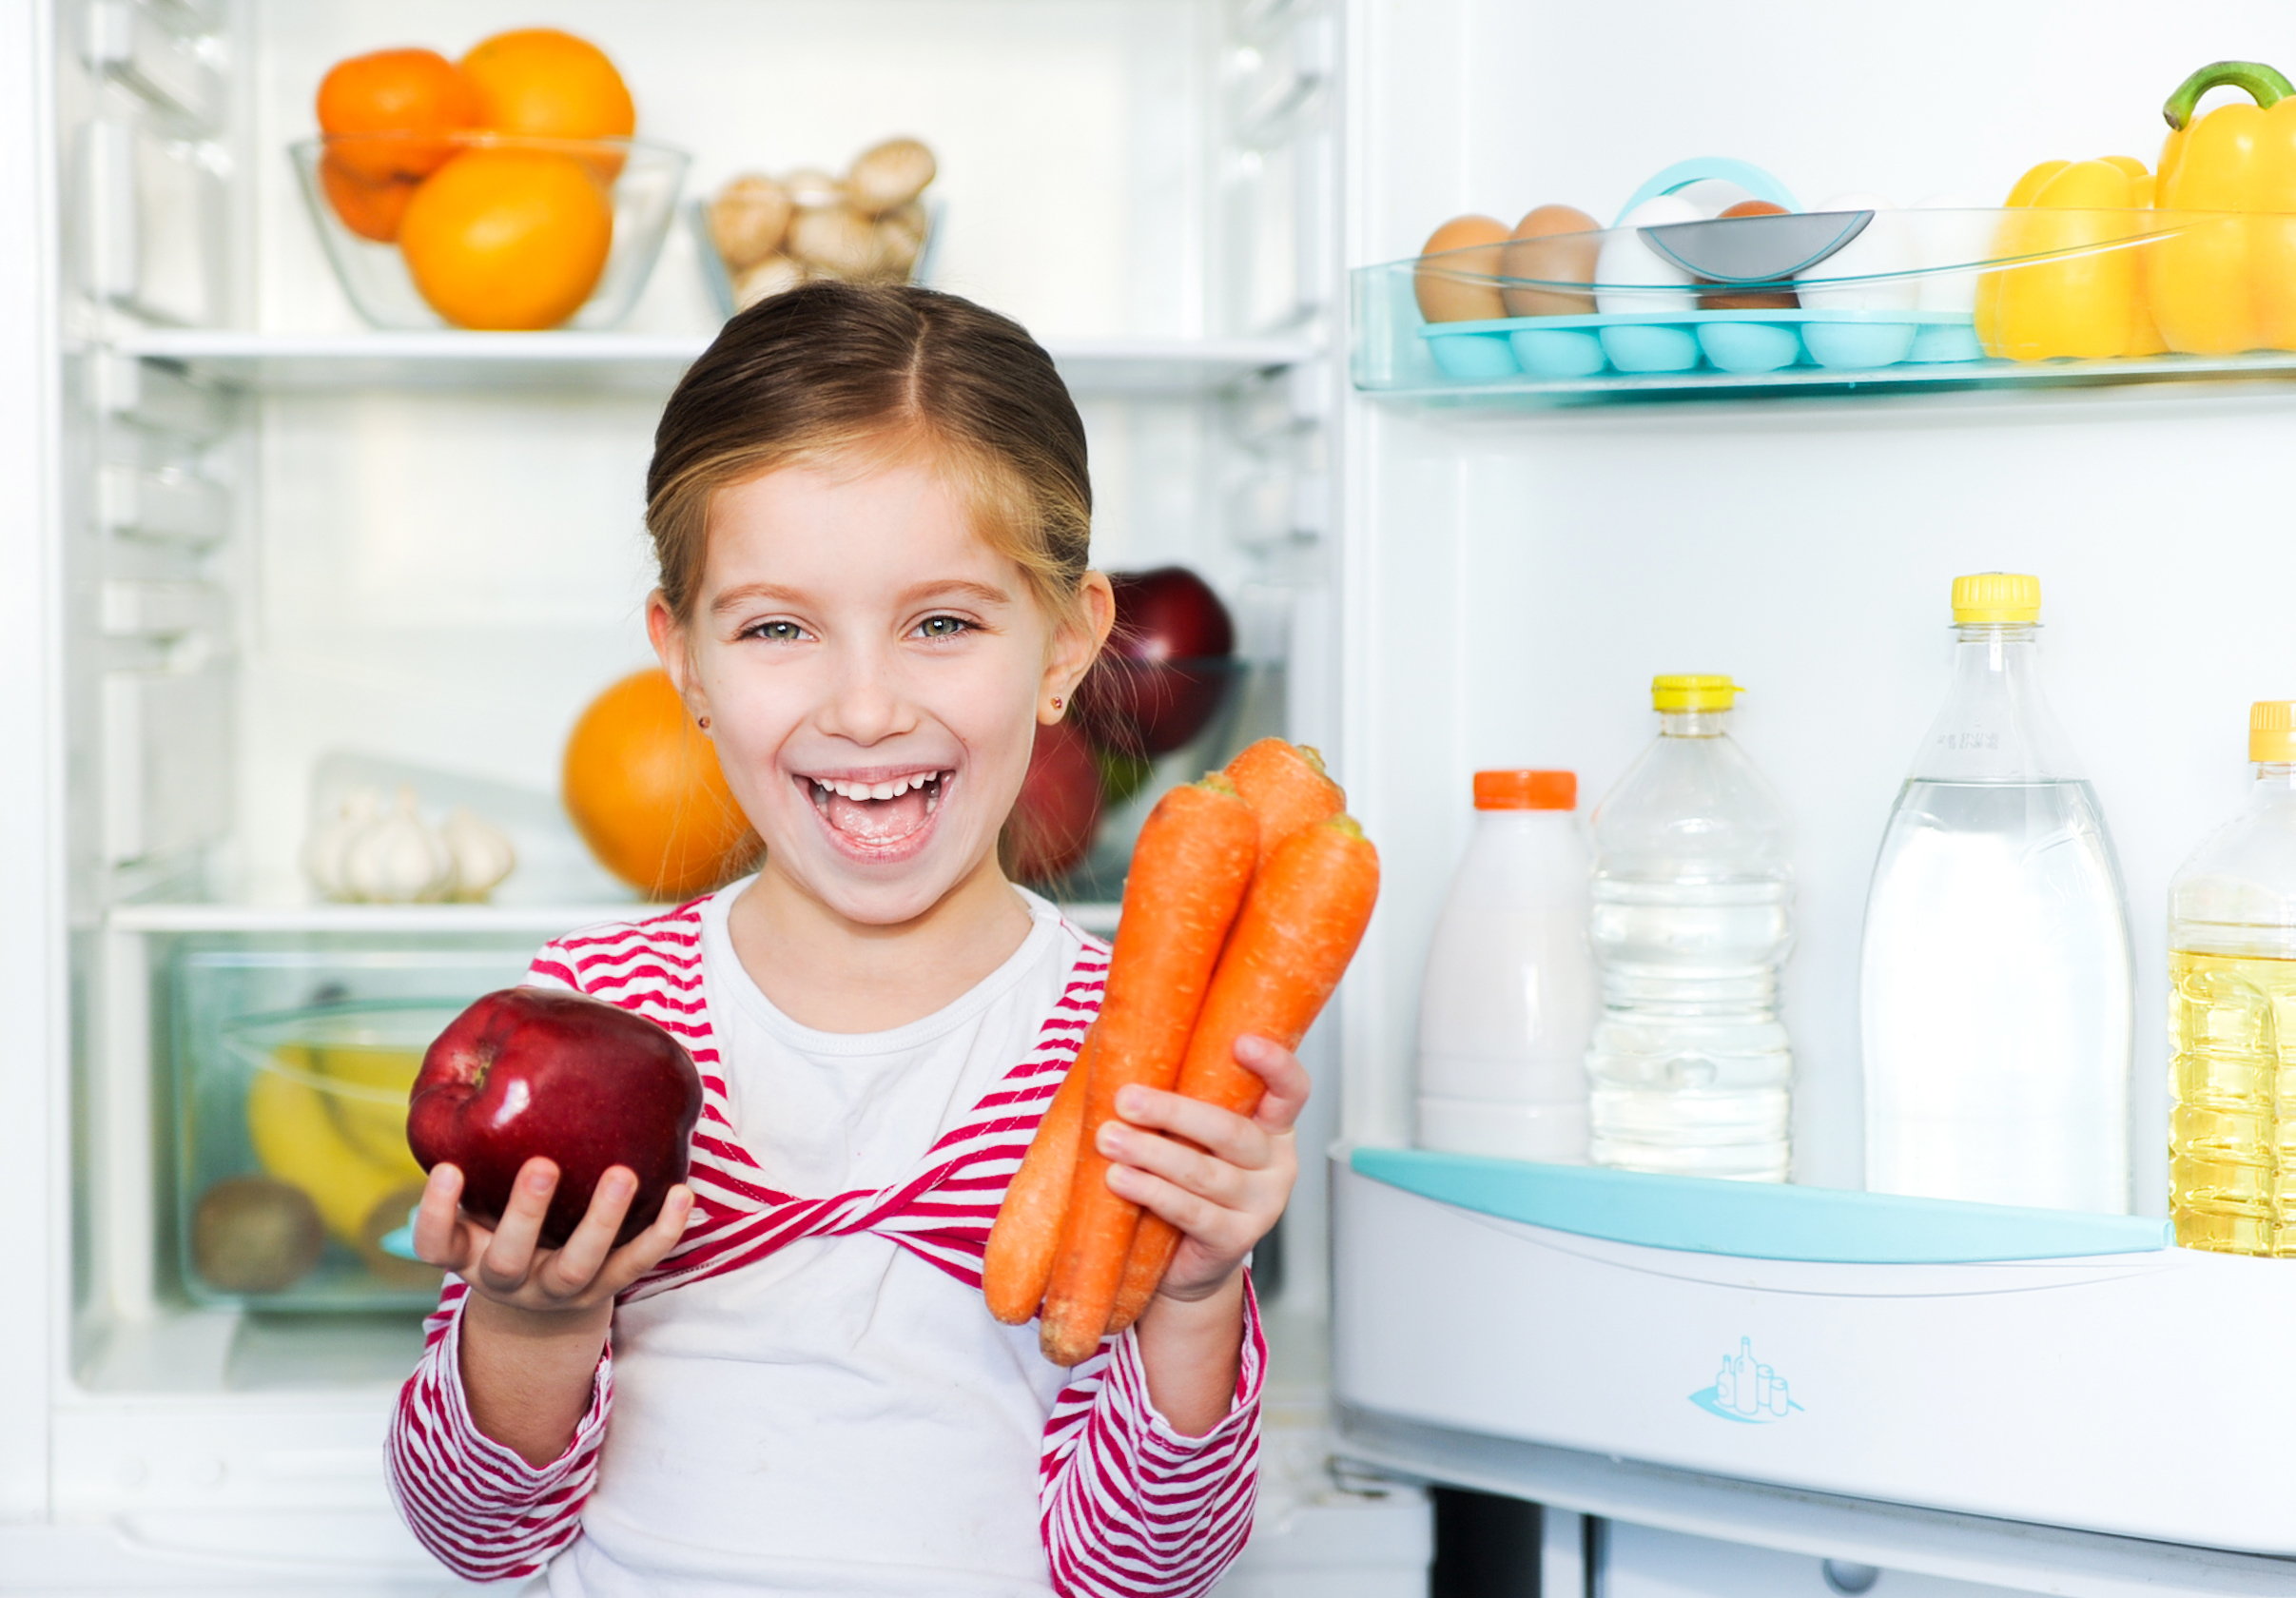 children and food Food safety concerns for children under five foodsafetygov children under the age of five are at an increased risk for foodborne illness and related health complications because their immune systems are still developing.